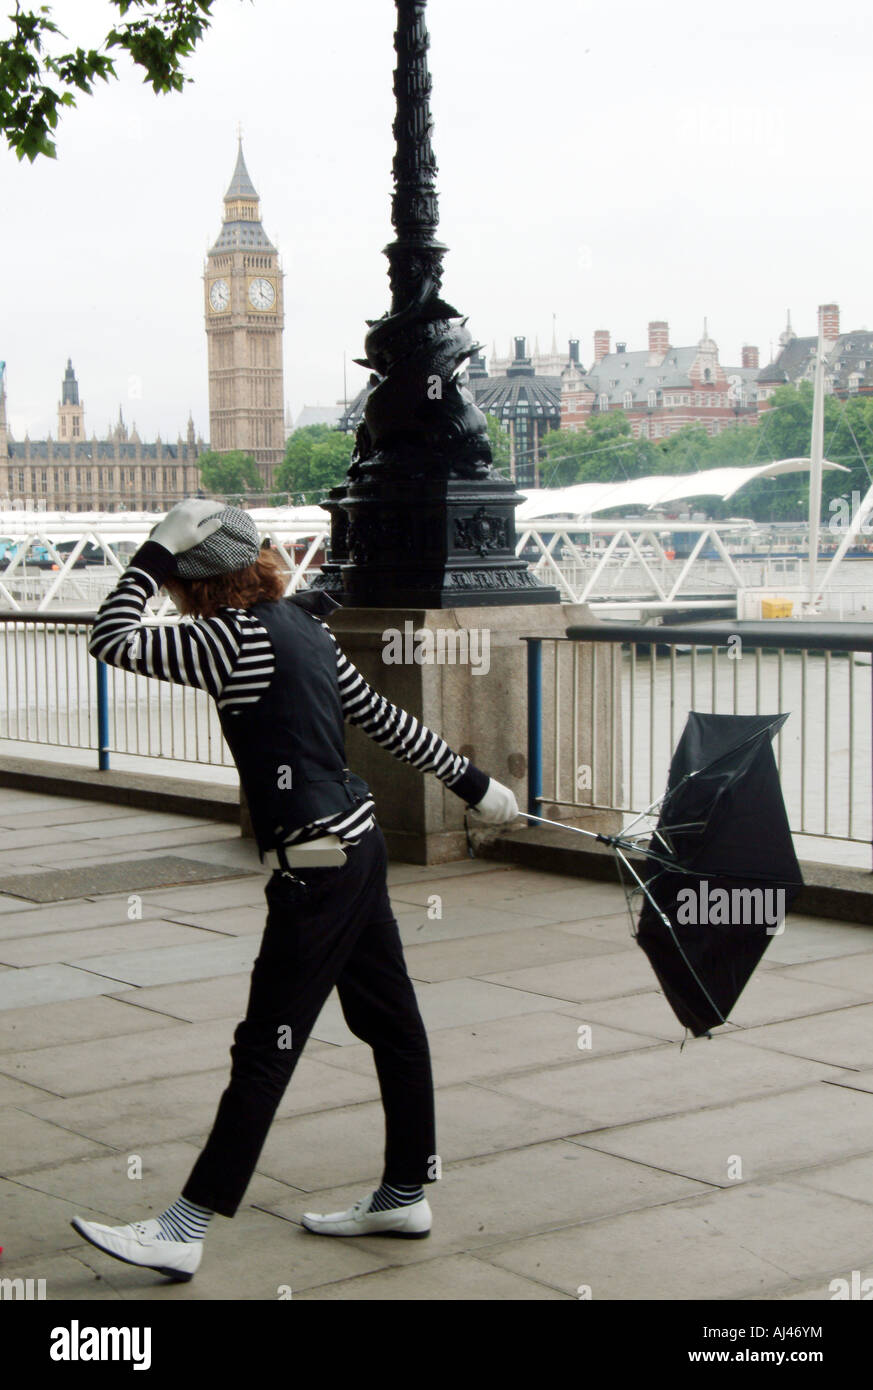 Street Performer, London - Stock Image